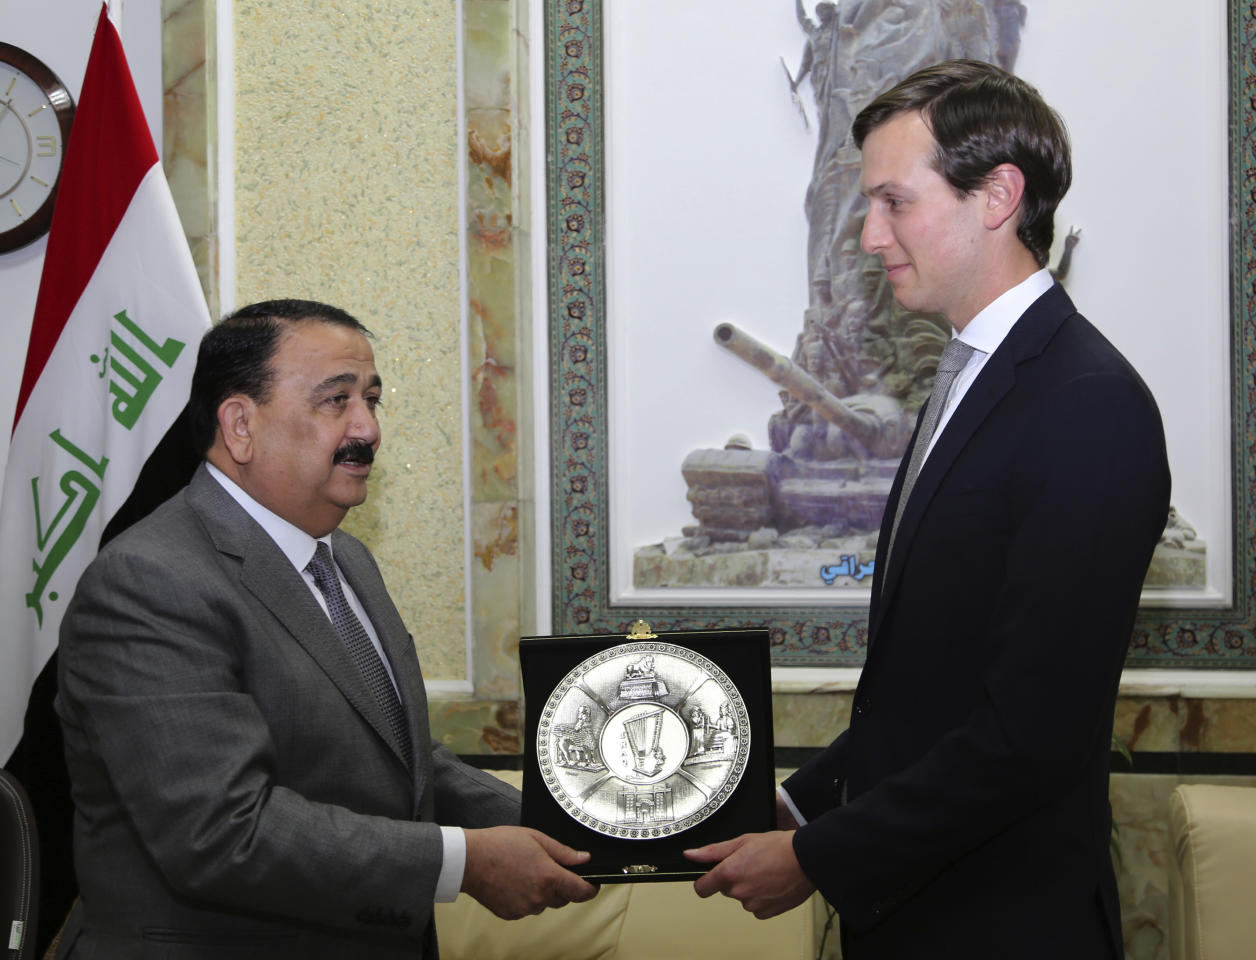 FILE - In this April 3, 2017, file photo, Jared Kushner, right, U.S. President Donald Trump's son-in-law and senior adviser, receives a gift from Iraqi Defense Minister, Ifran al-Hayali, at the Ministry of Defense, Baghdad, Iraq. Not since John F. Kennedy appointed his brother Bobby to be attorney general and his brother-in-law as director of the Peace Corps has a president leaned so heavily on his family. Kushner is a senior adviser to the president with a bulging and growing portfolio that includes everything from brokering Mideast peace to restructuring the federal government. (AP Photo)